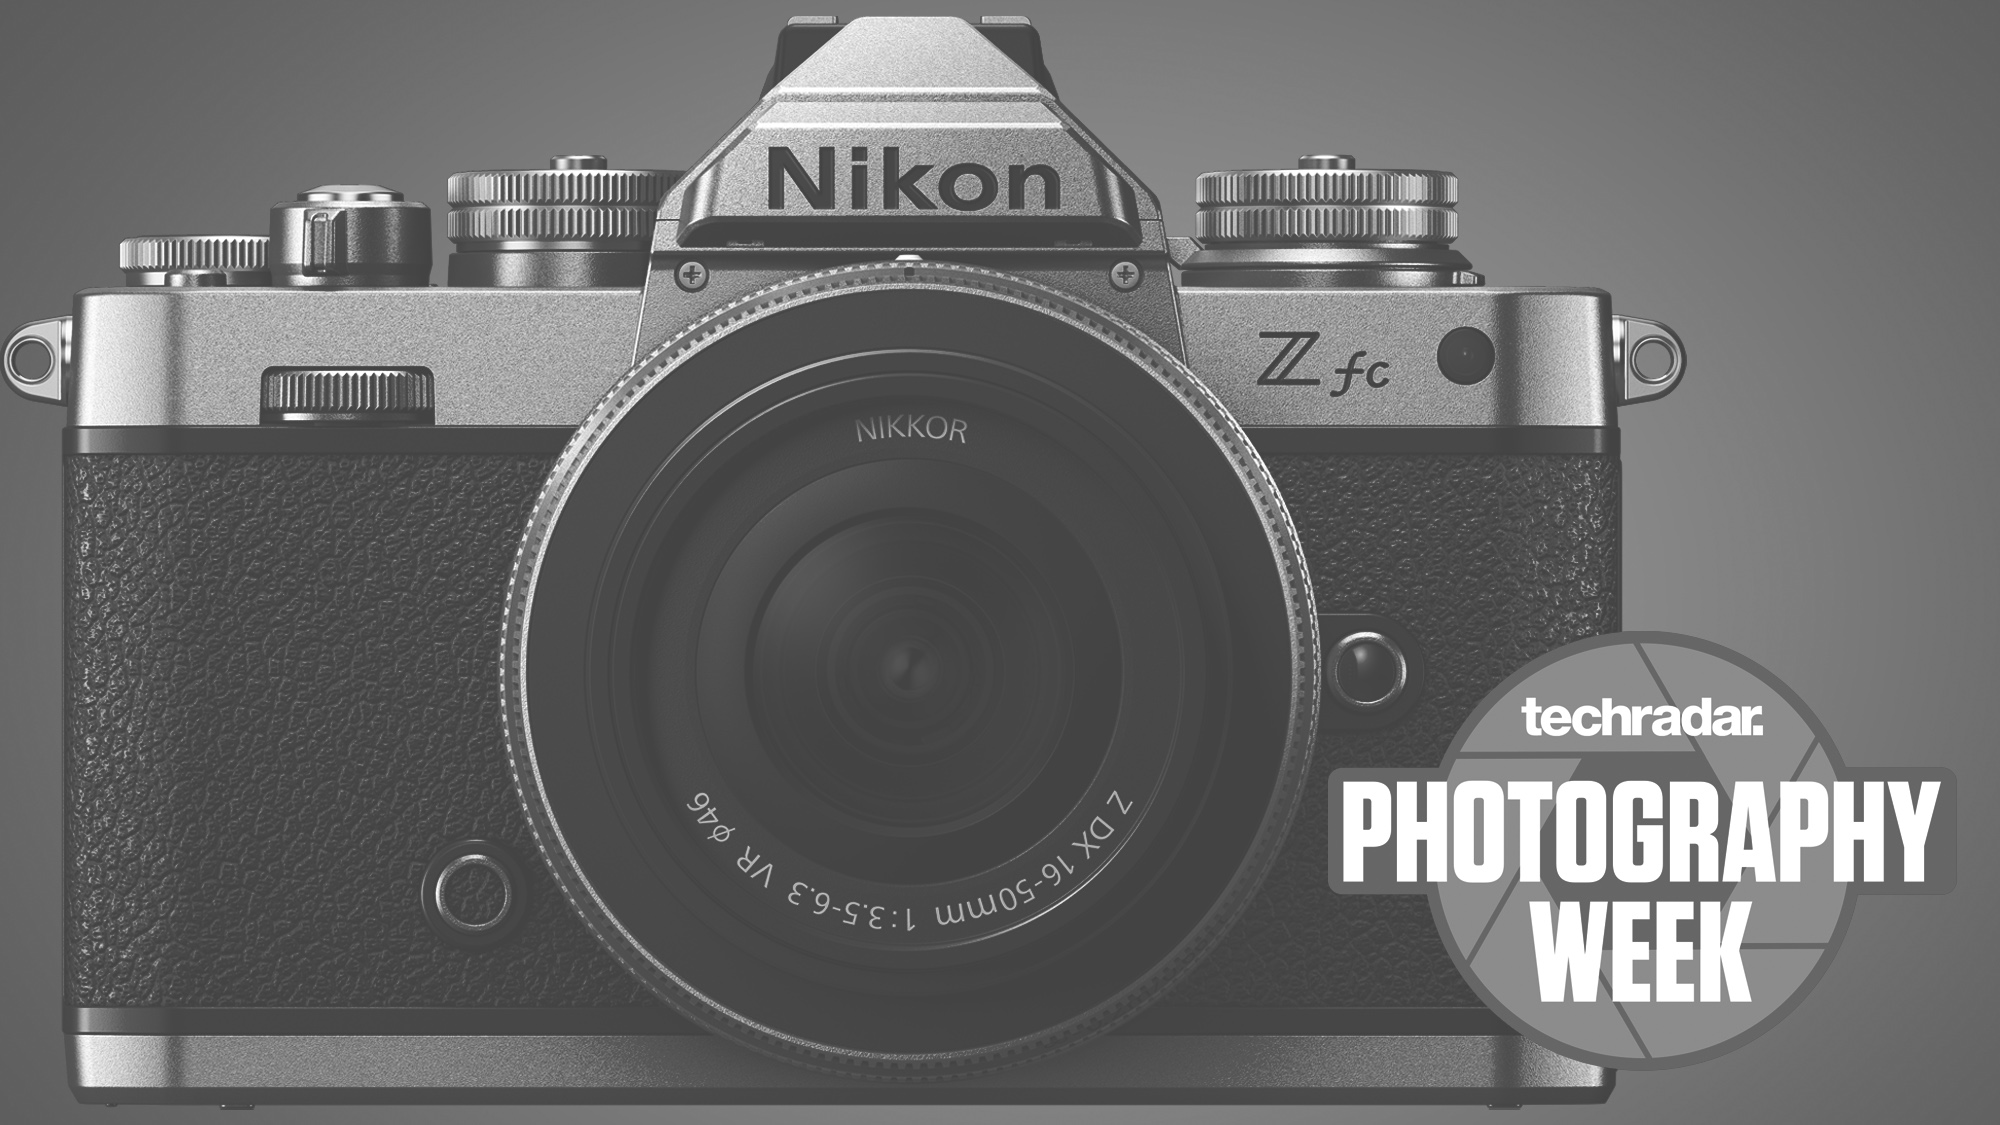 The front of the Nikon Zfc camera